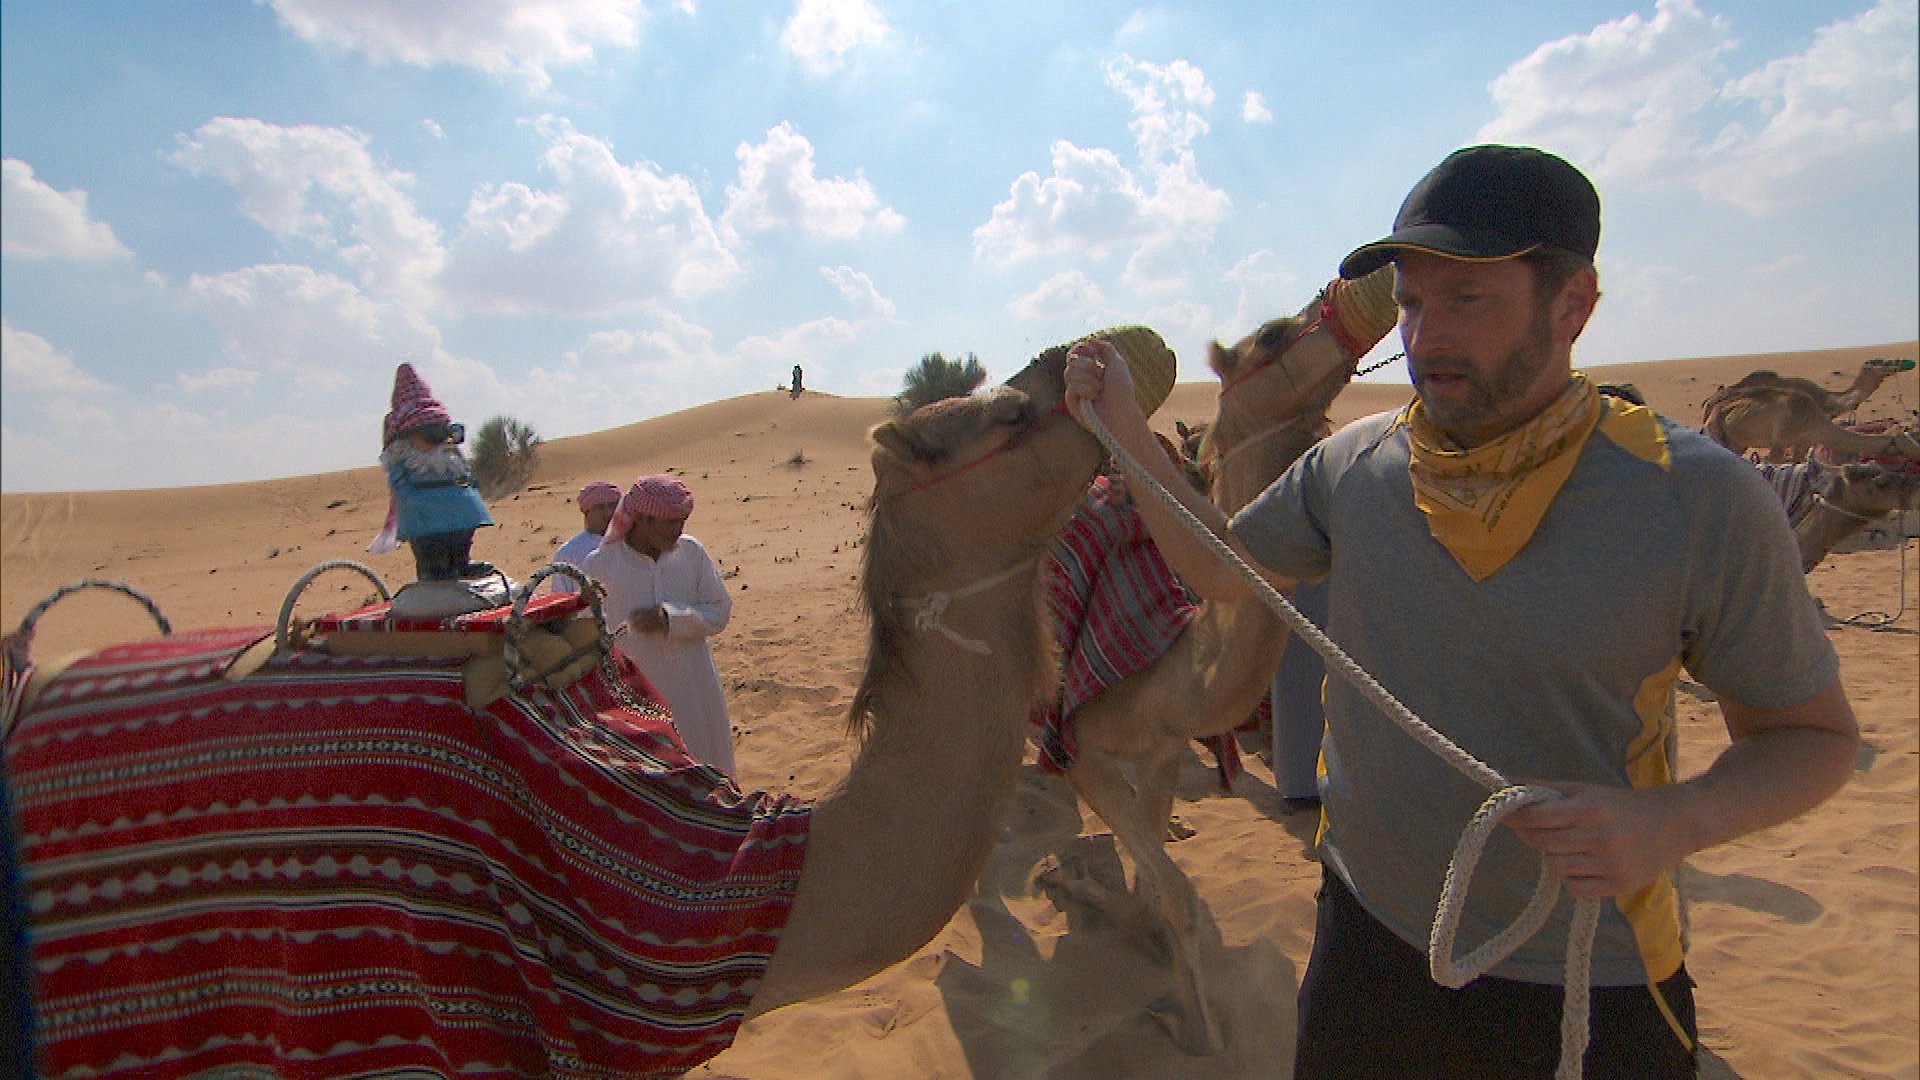 In Detour A, Burnie and Ashley must deliver four camels to a Bedouin camp.